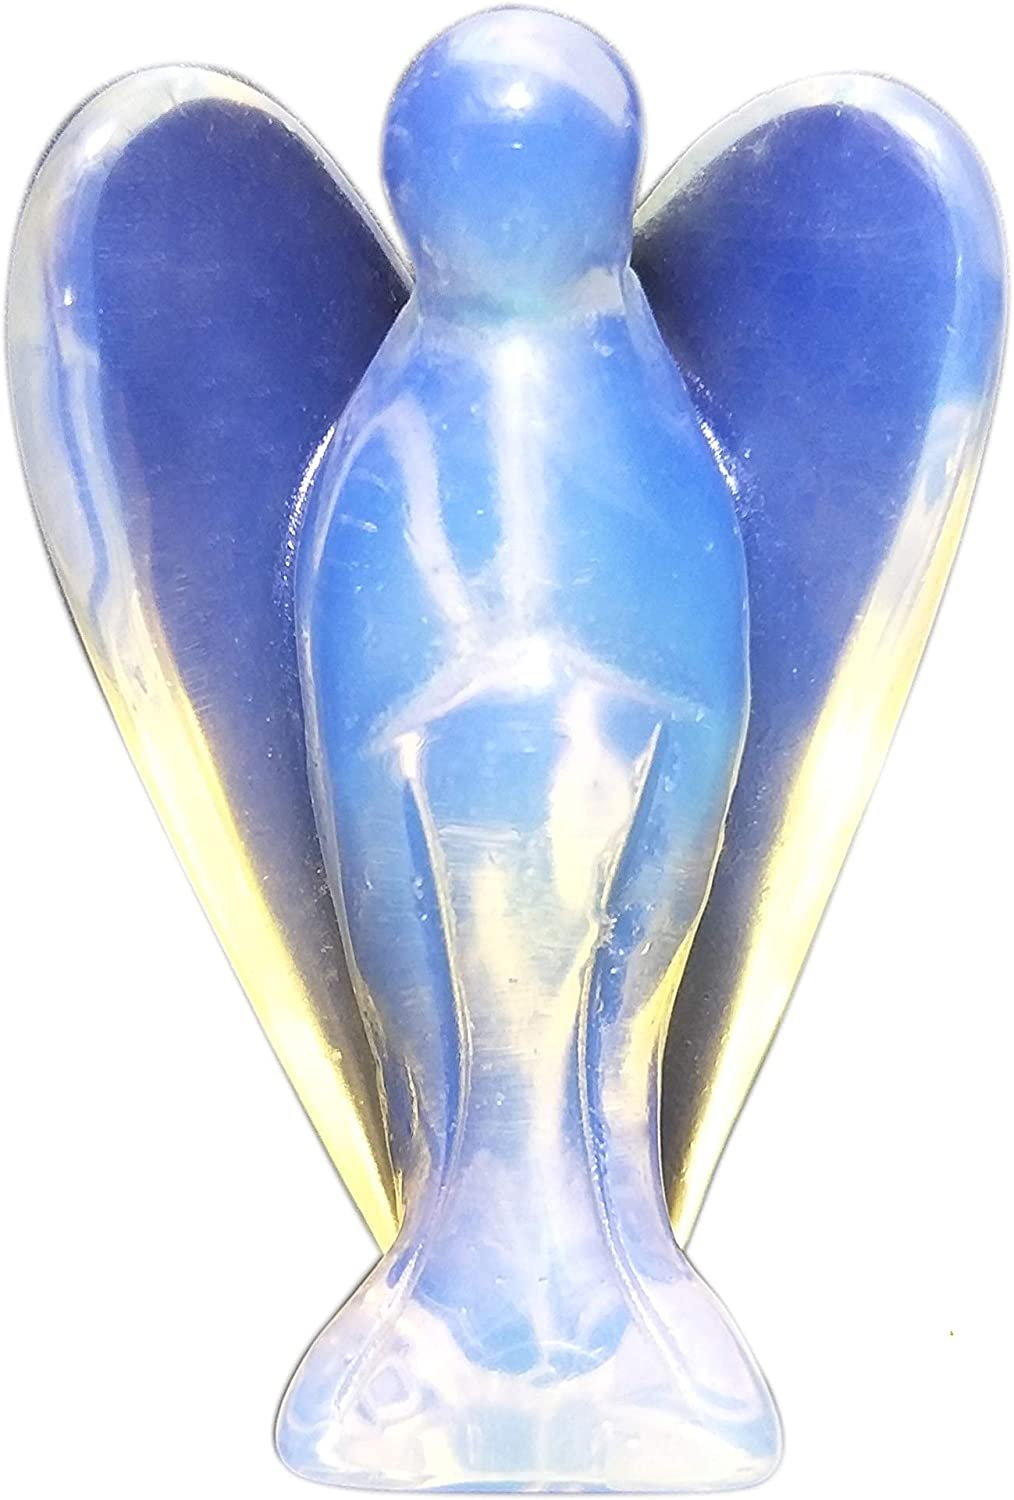 1 Pocket Guardian Angel Statue Figurine Made of Opalite Stone Representing Peace and Harmony